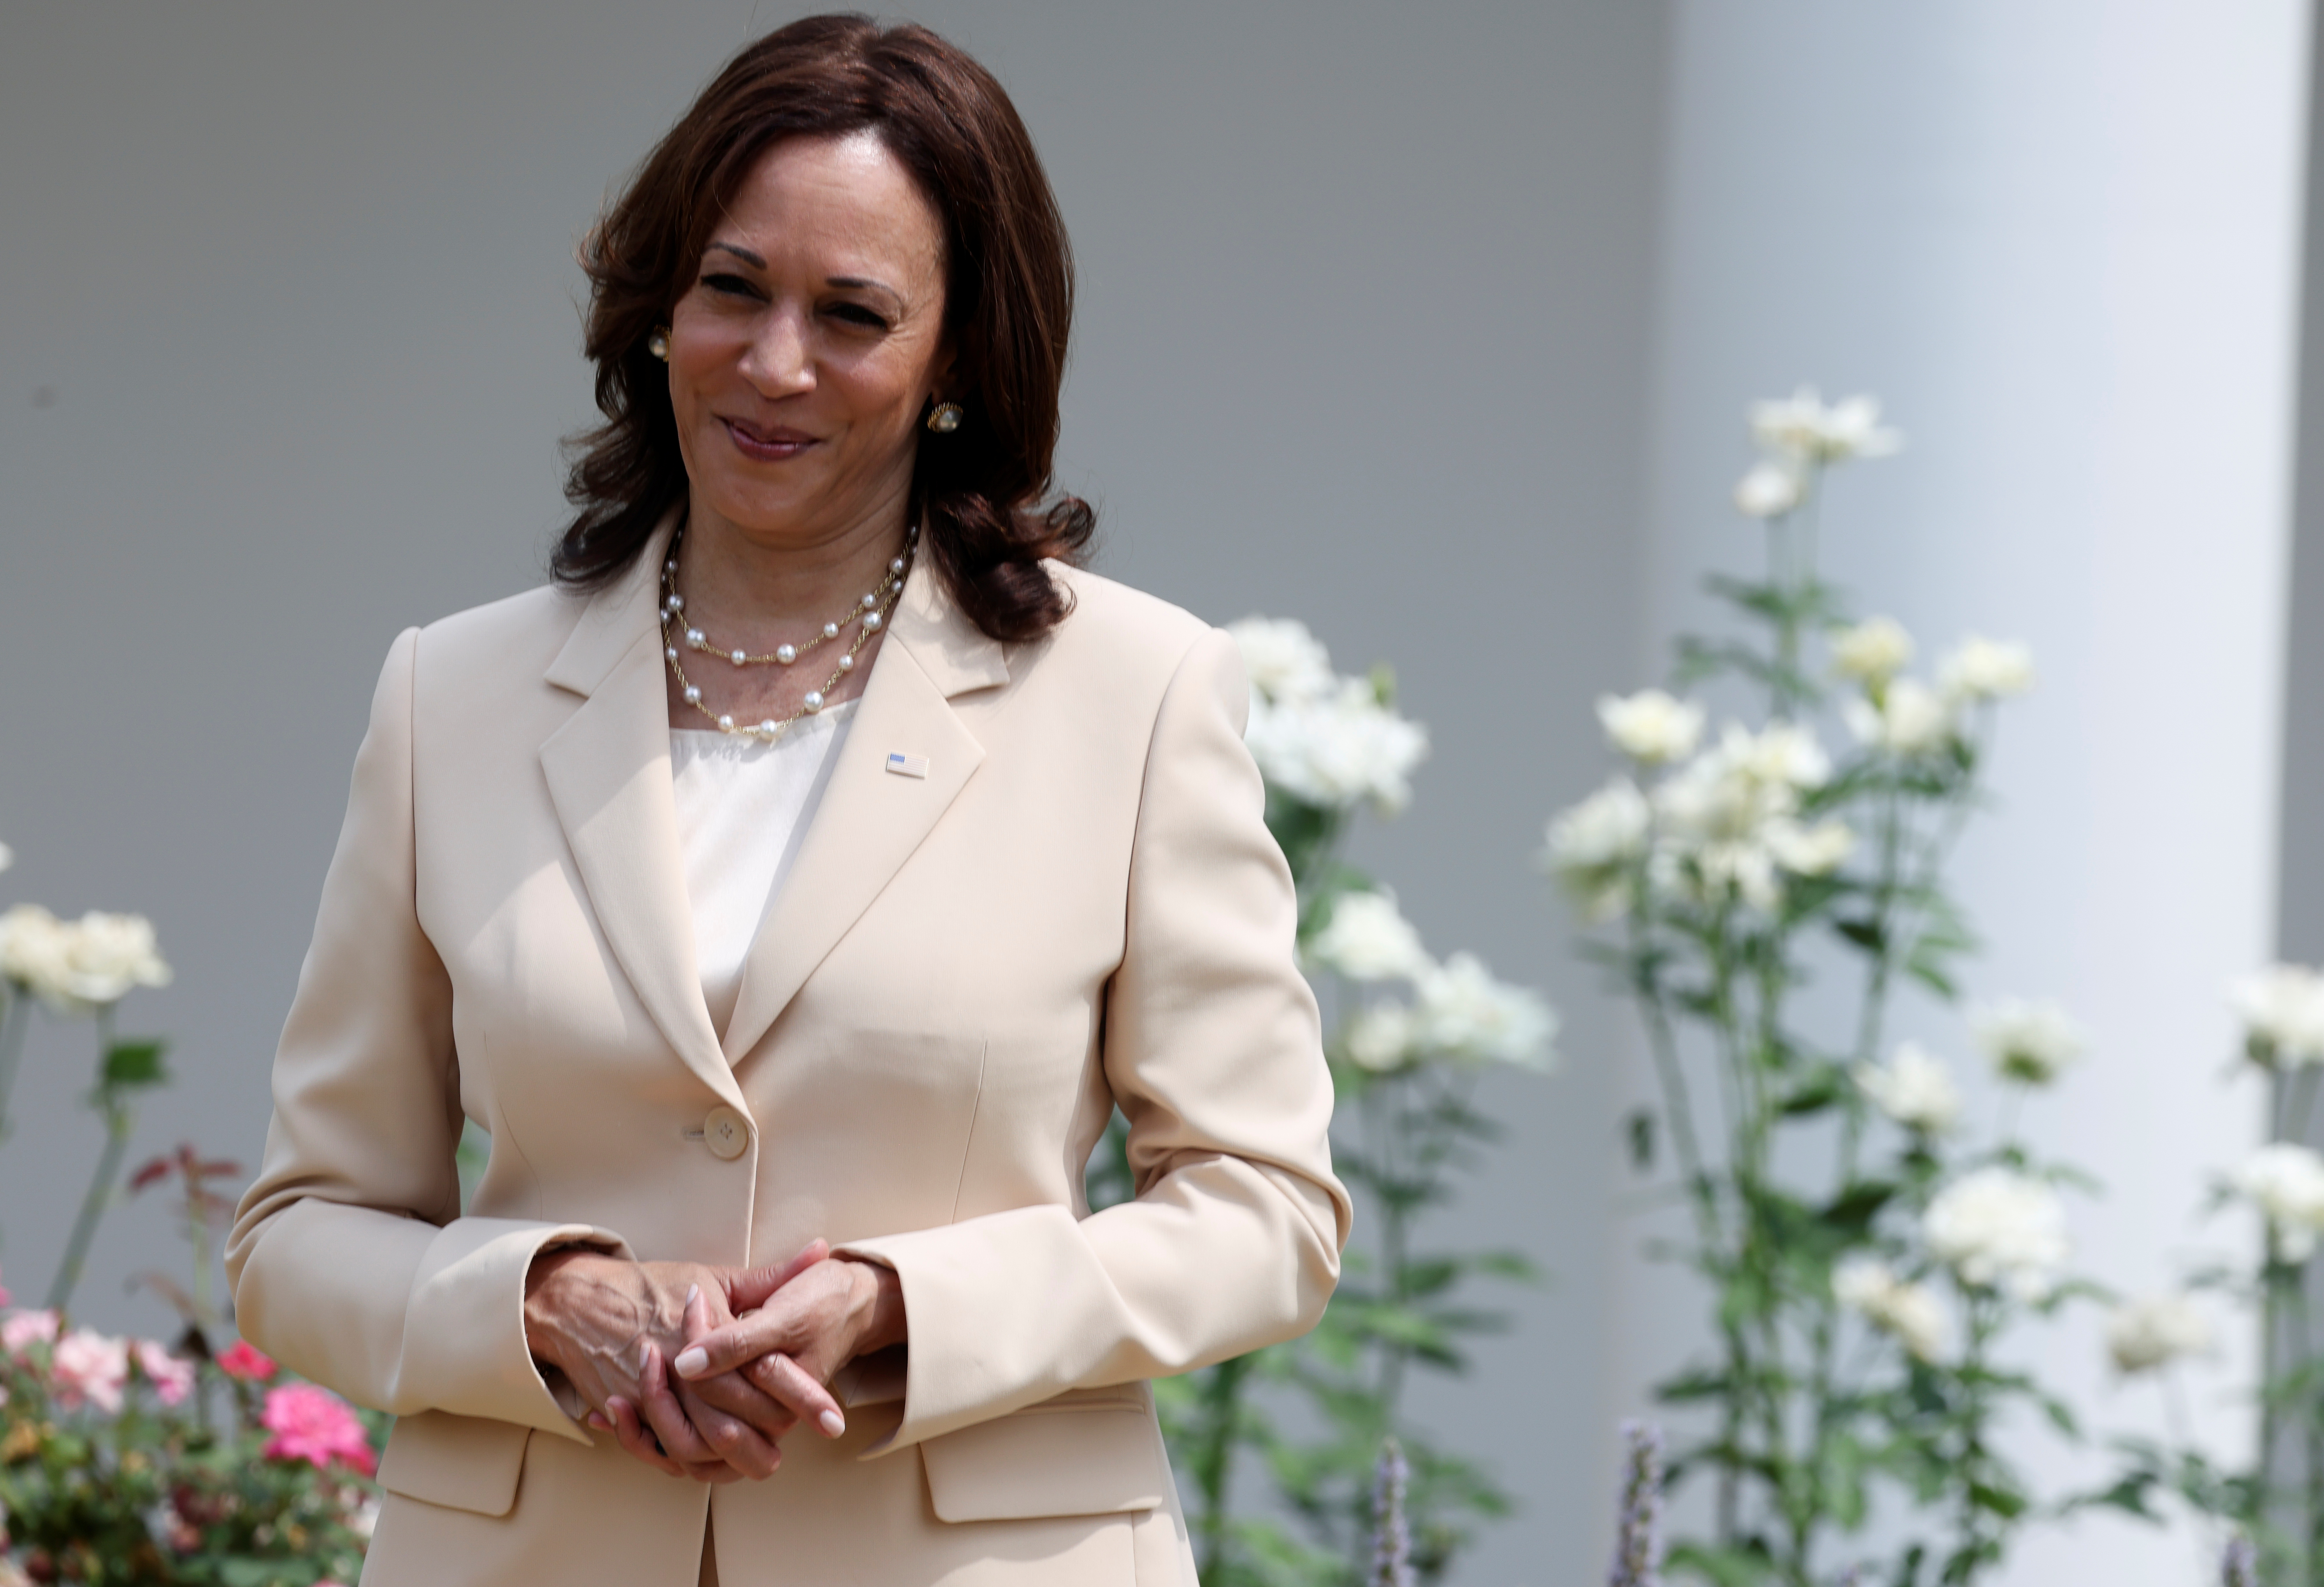 U.S. Vice President Kamala Harris stands by during an event to celebrate the 31st anniversary of the Americans with Disabilities Act (ADA) in the White House Rose Garden in Washington, U.S., July 26, 2021. REUTERS/Evelyn Hockstein